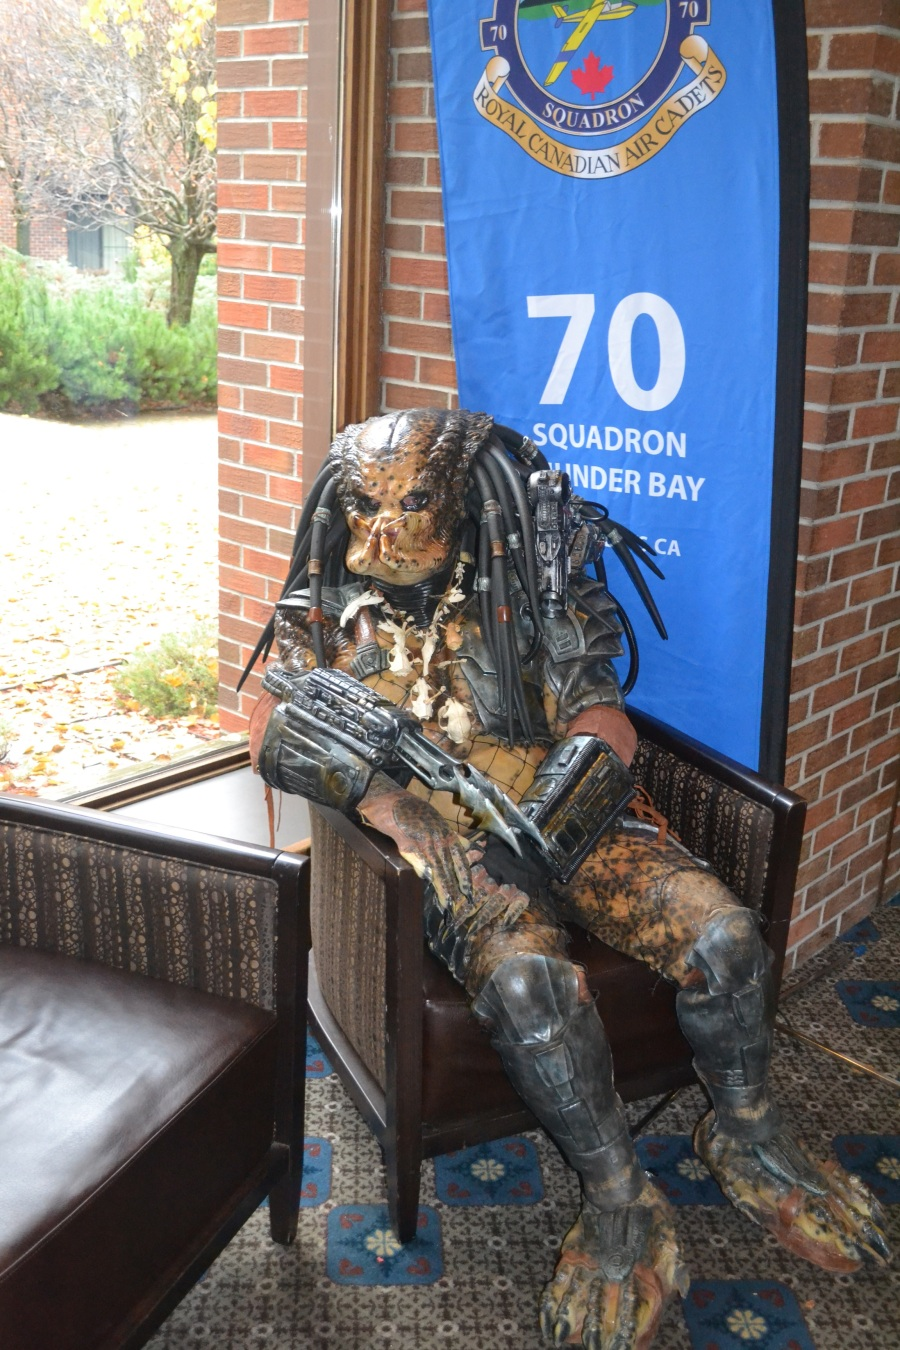 Predator lounging in a chair